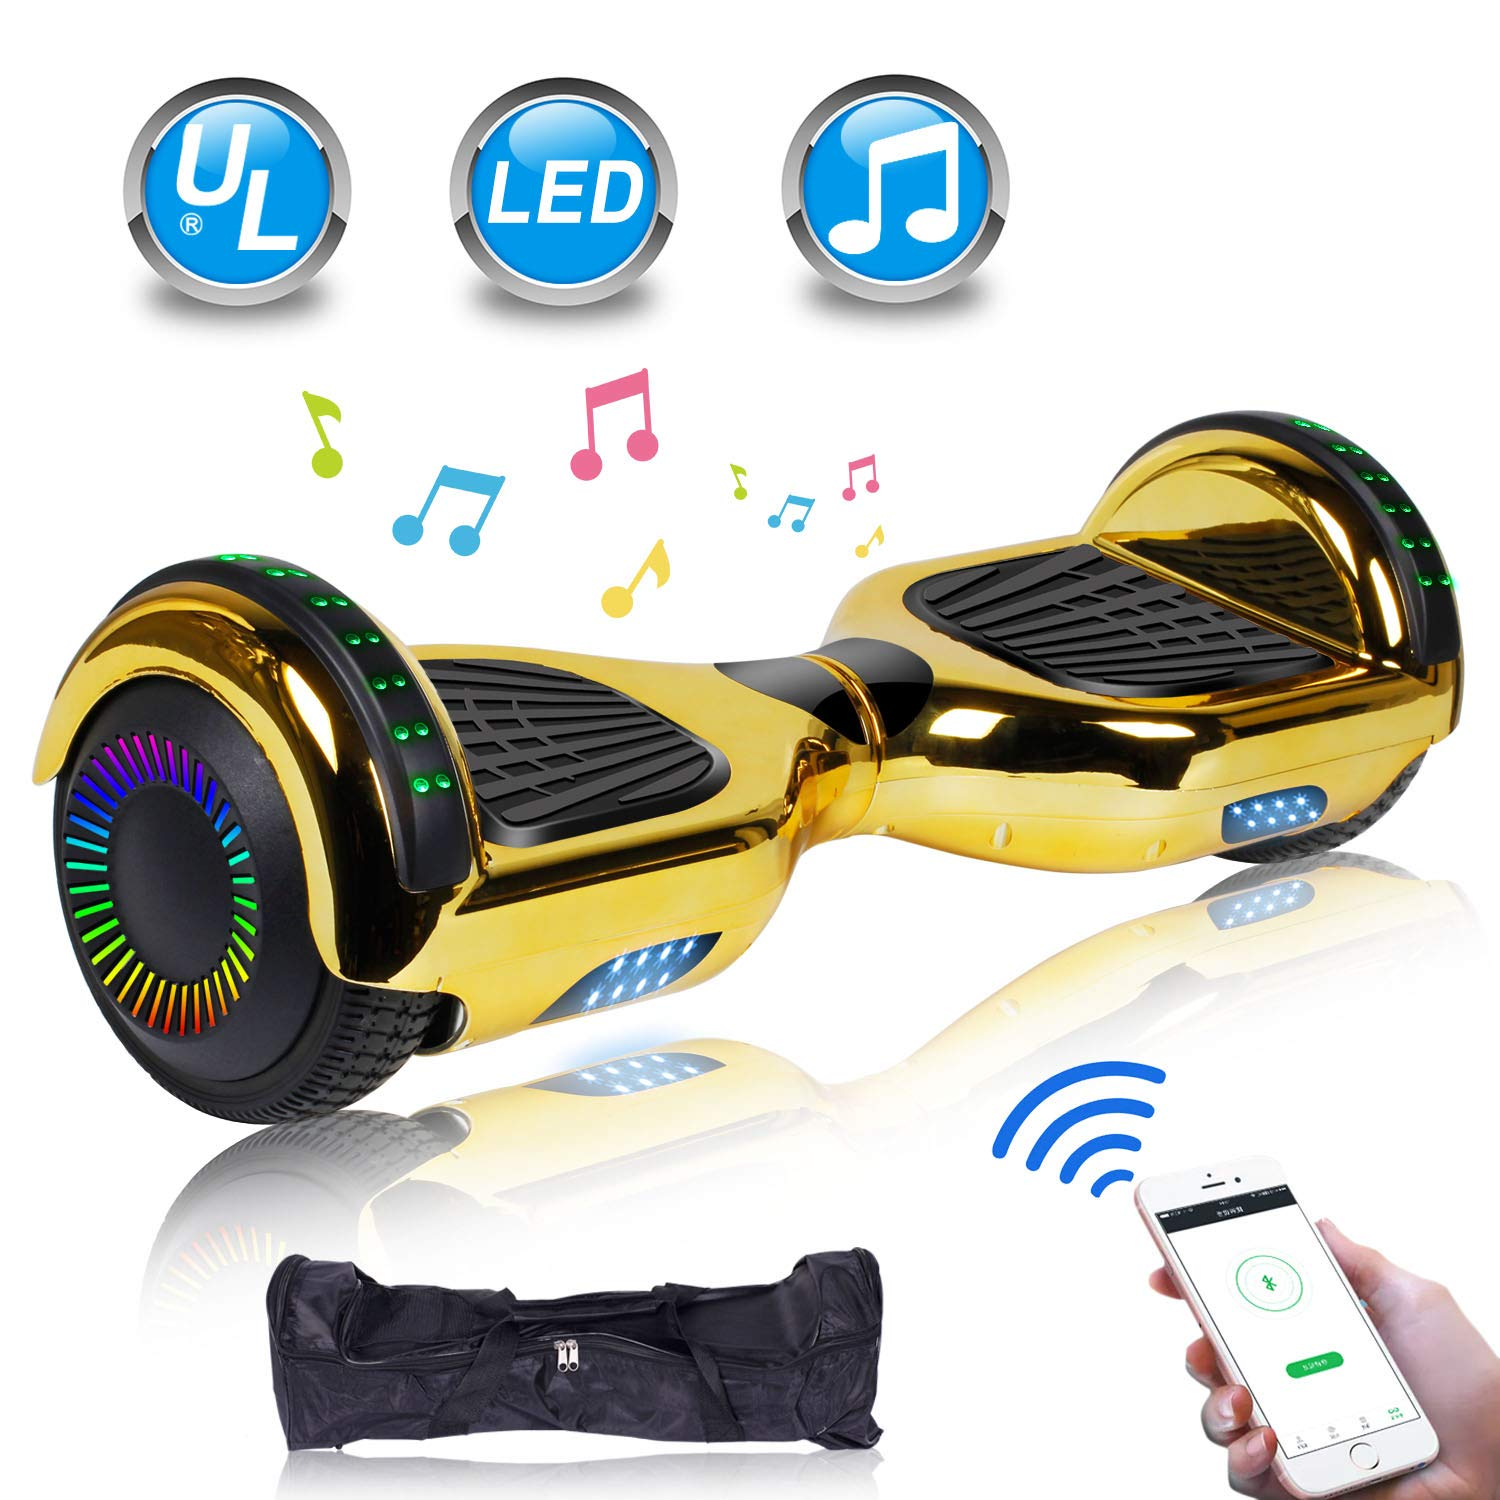 UNI-SUN Chrome Hoverboard for Kids, 6.5'' Two Wheel Electric Scooter, Self Balancing Hoverboard with Bluetooth and LED Lights for Adults, UL 2272 Certified Hover Board,Bluetooth Gold by UNI-SUN